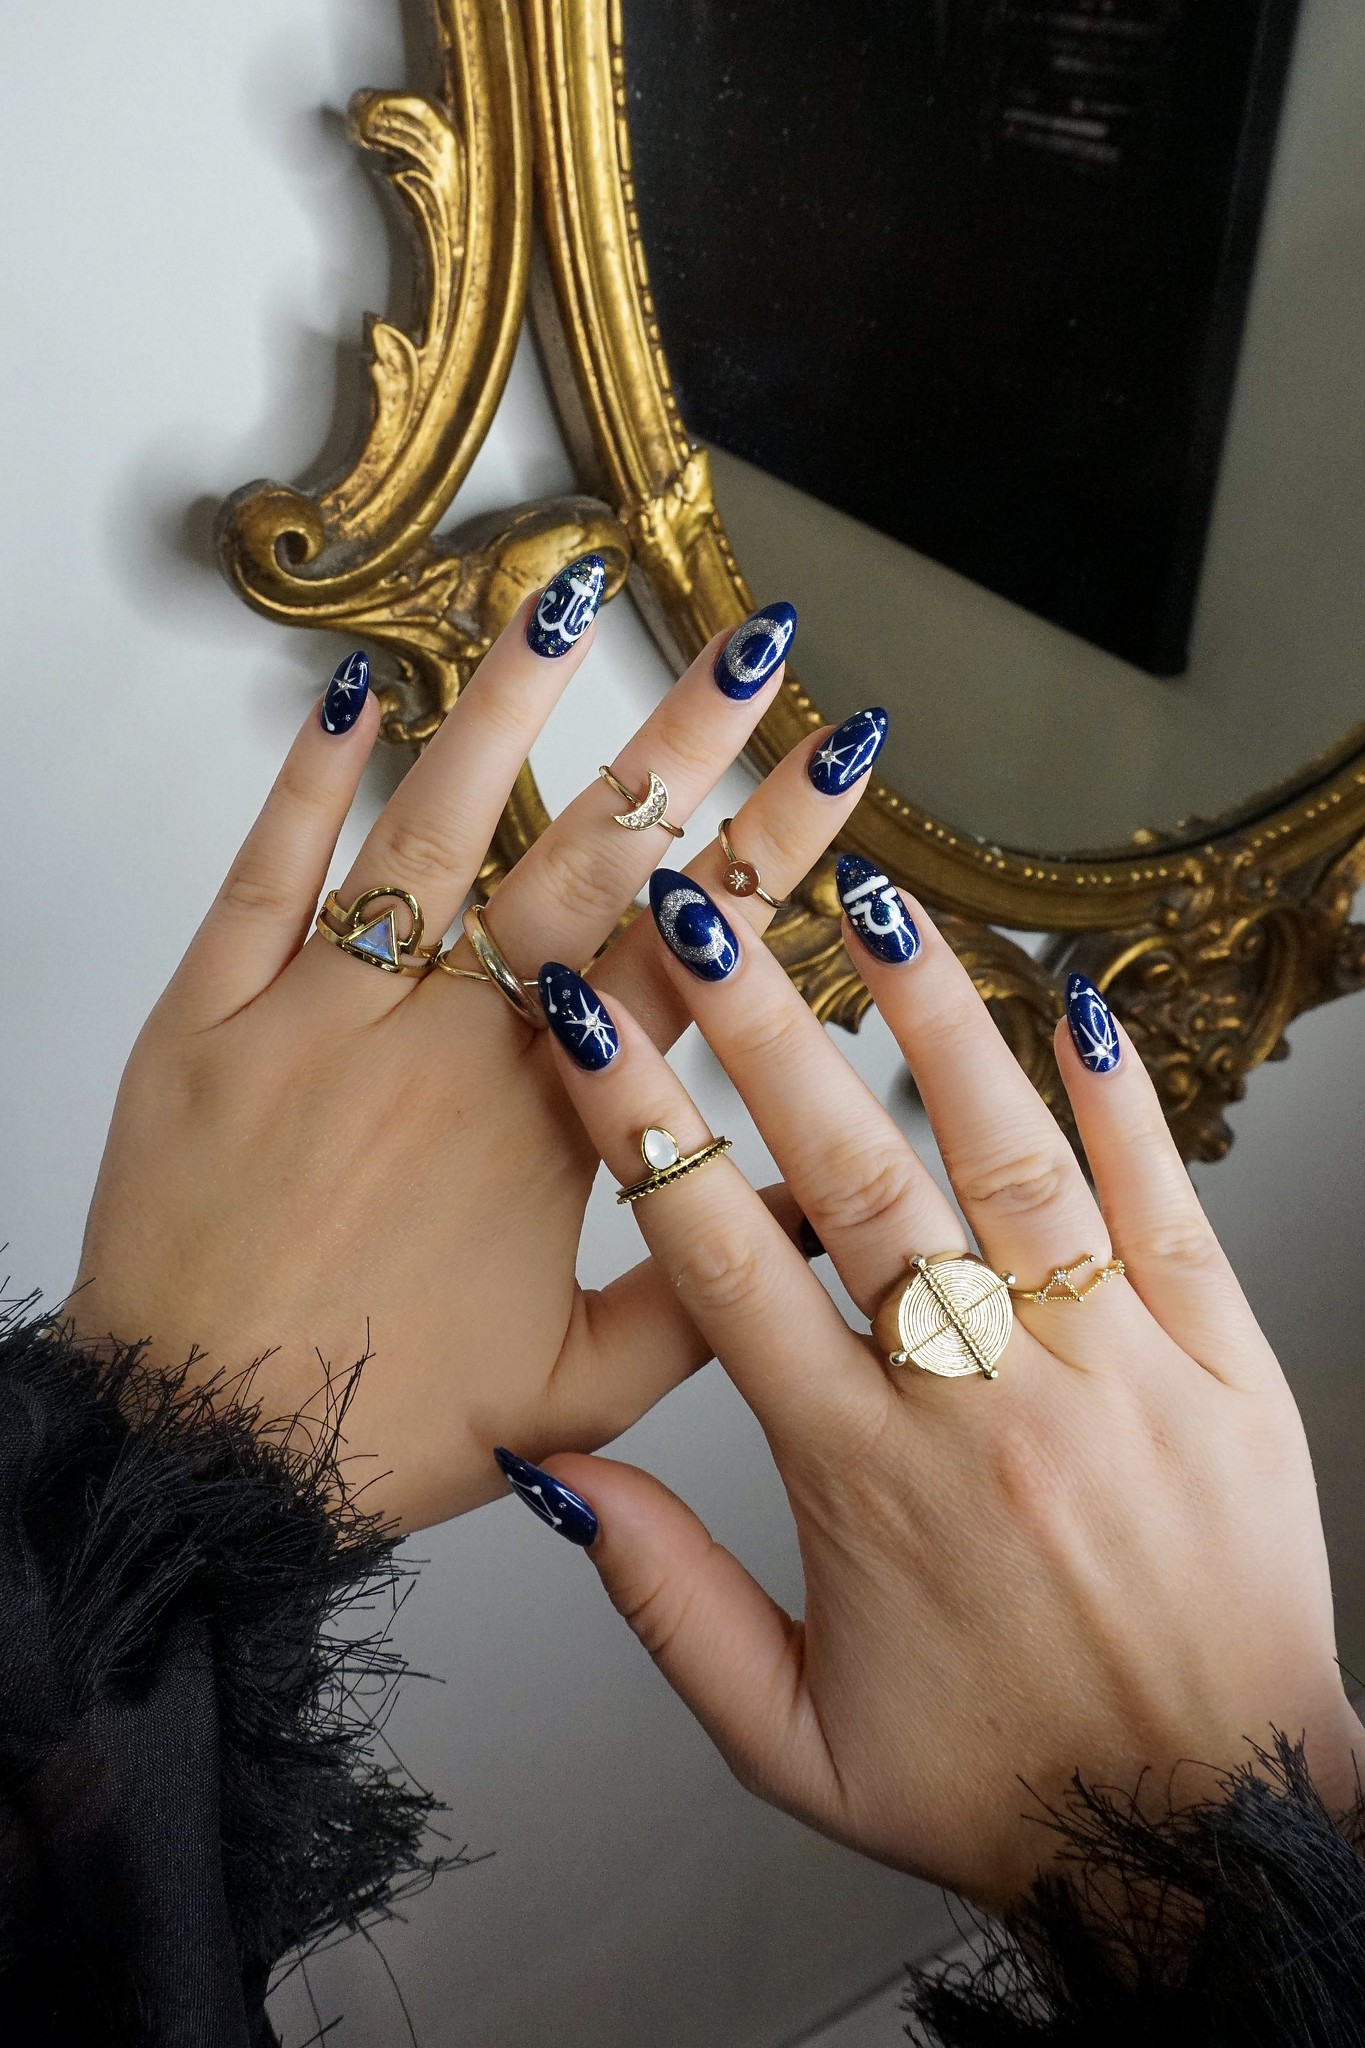 Libra Nails | Zodiac Manicure | Astrological Sign Mani | Navy Sparkle Star Nails | Witchy Halloween Nails | Nail Art | Star Nail Designs | Almond Shape Nails | Fall Nails | Spooky Nails